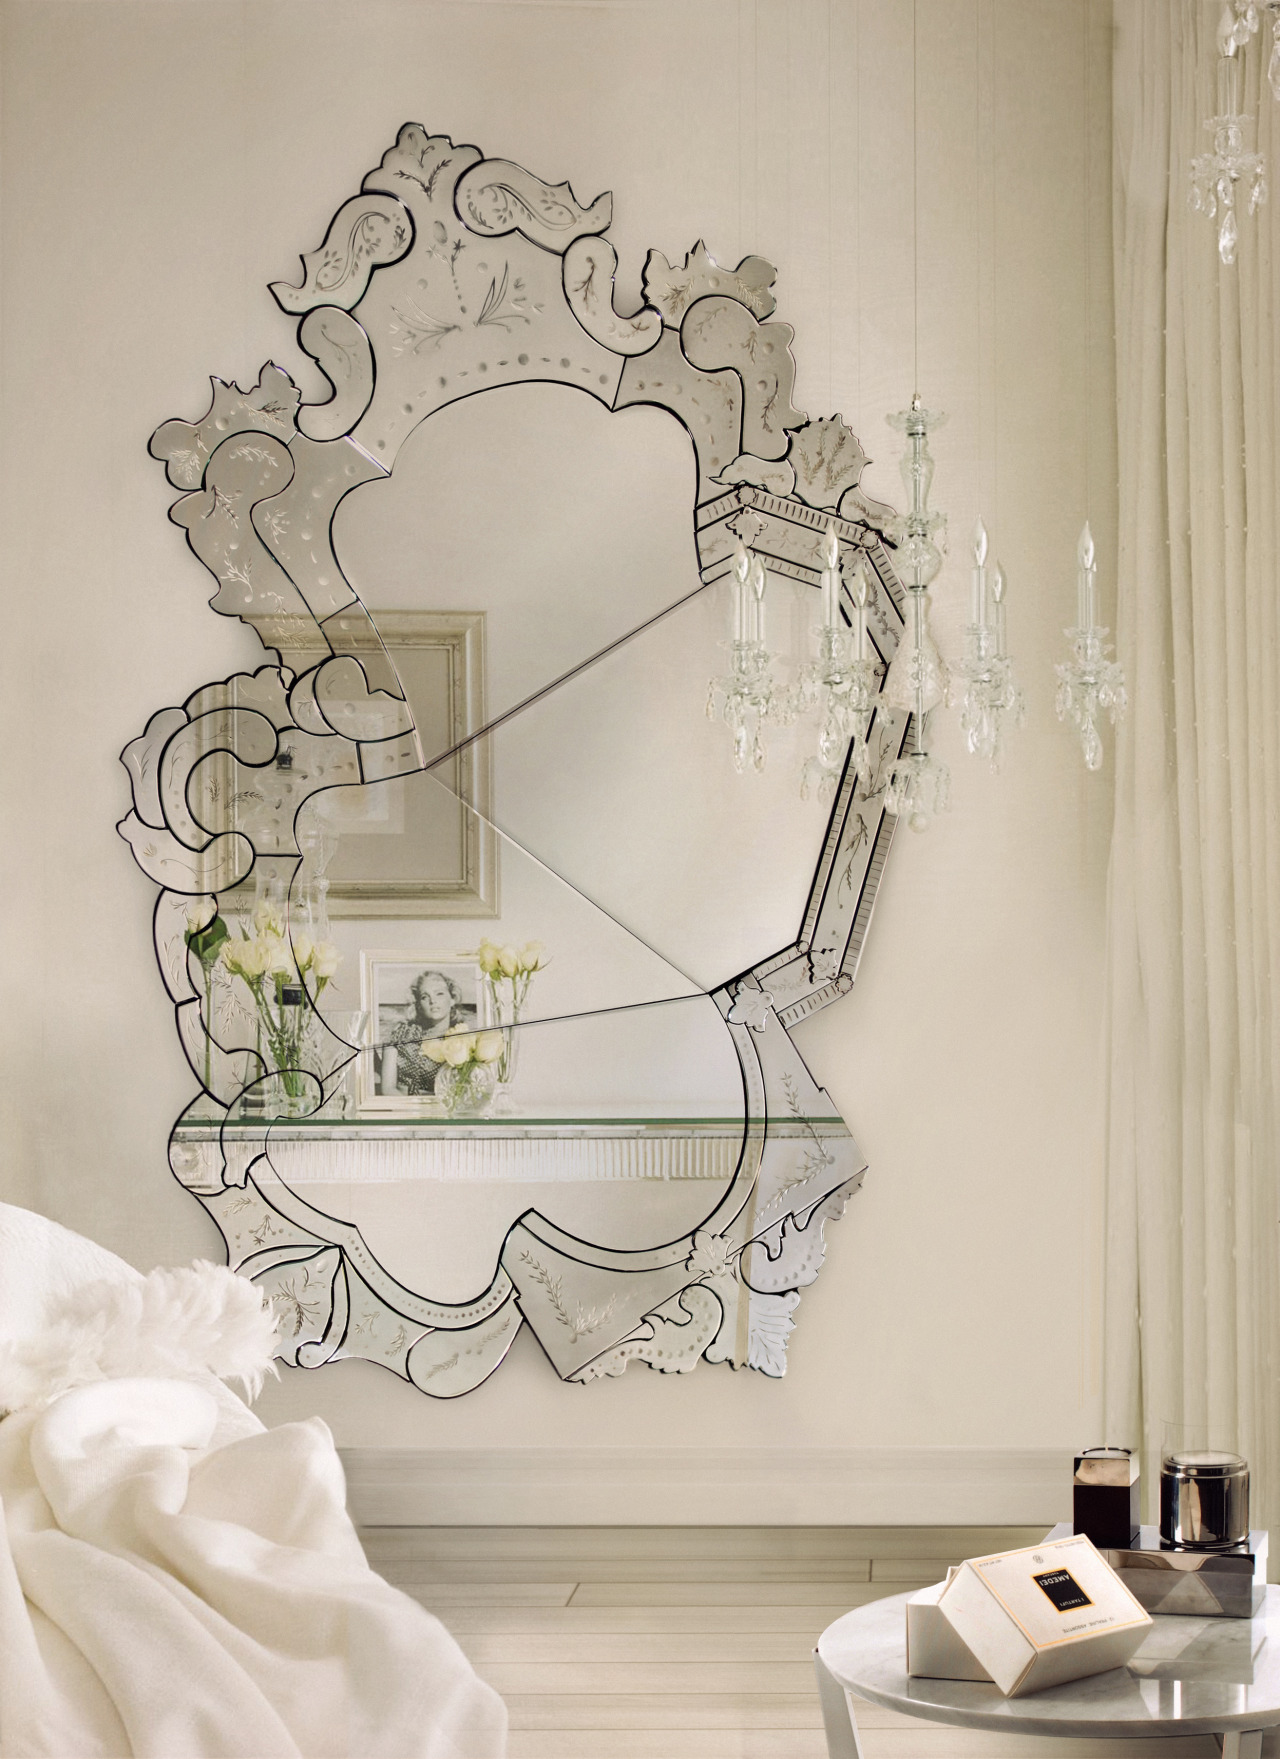 BOCA DO LOBO  wall mirror designs The Most Beautiful Wall Mirror Designs for Your Living Room The Most Beautiful Wall Mirror Designs for Your Living Room2